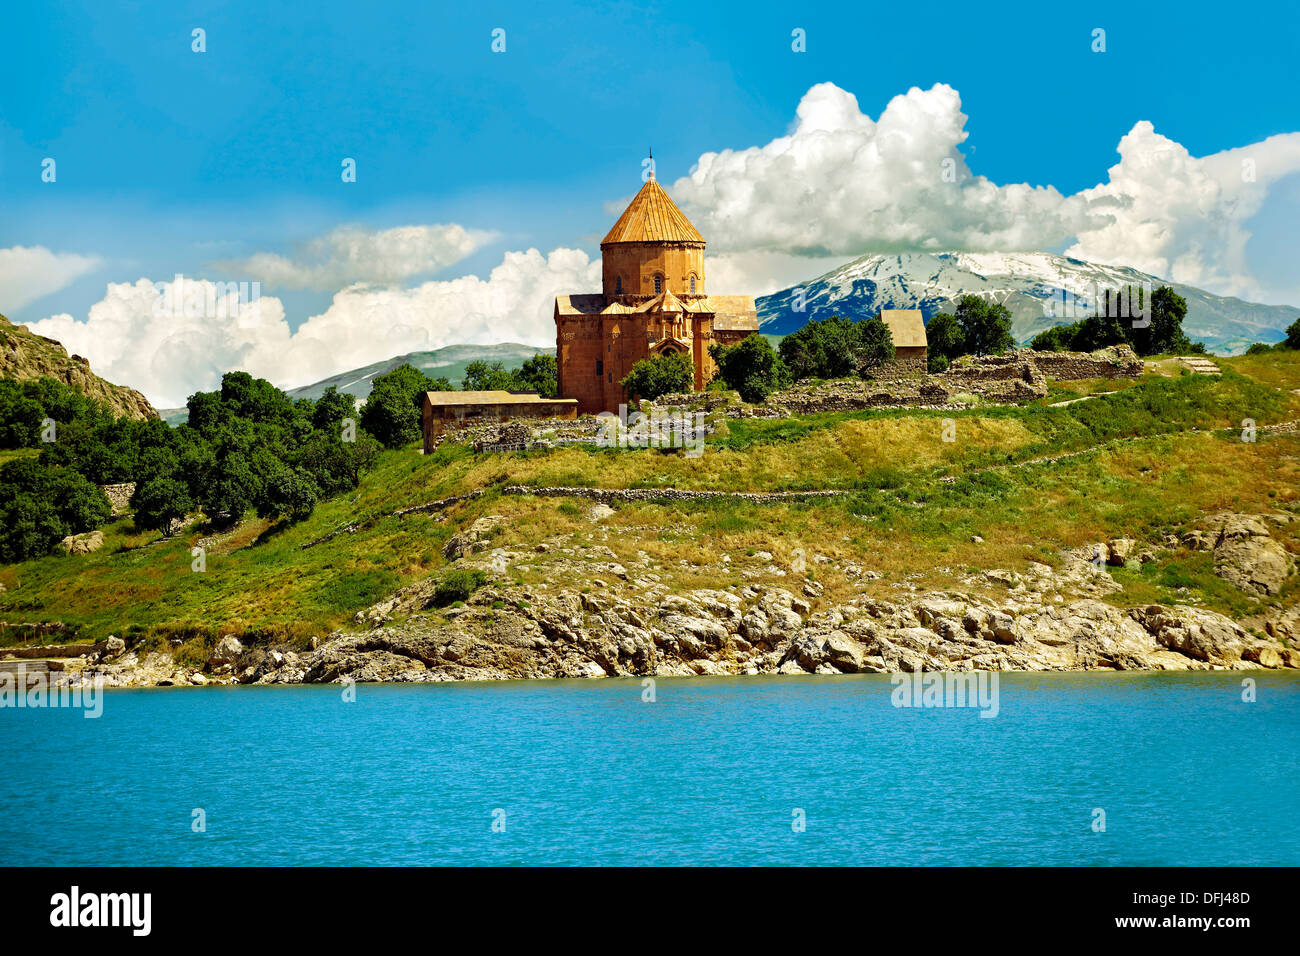 The 10th century Armenian Orthodox Cathedral of the Holy Cross, Akdamar  Island, Lake van - Stock Image